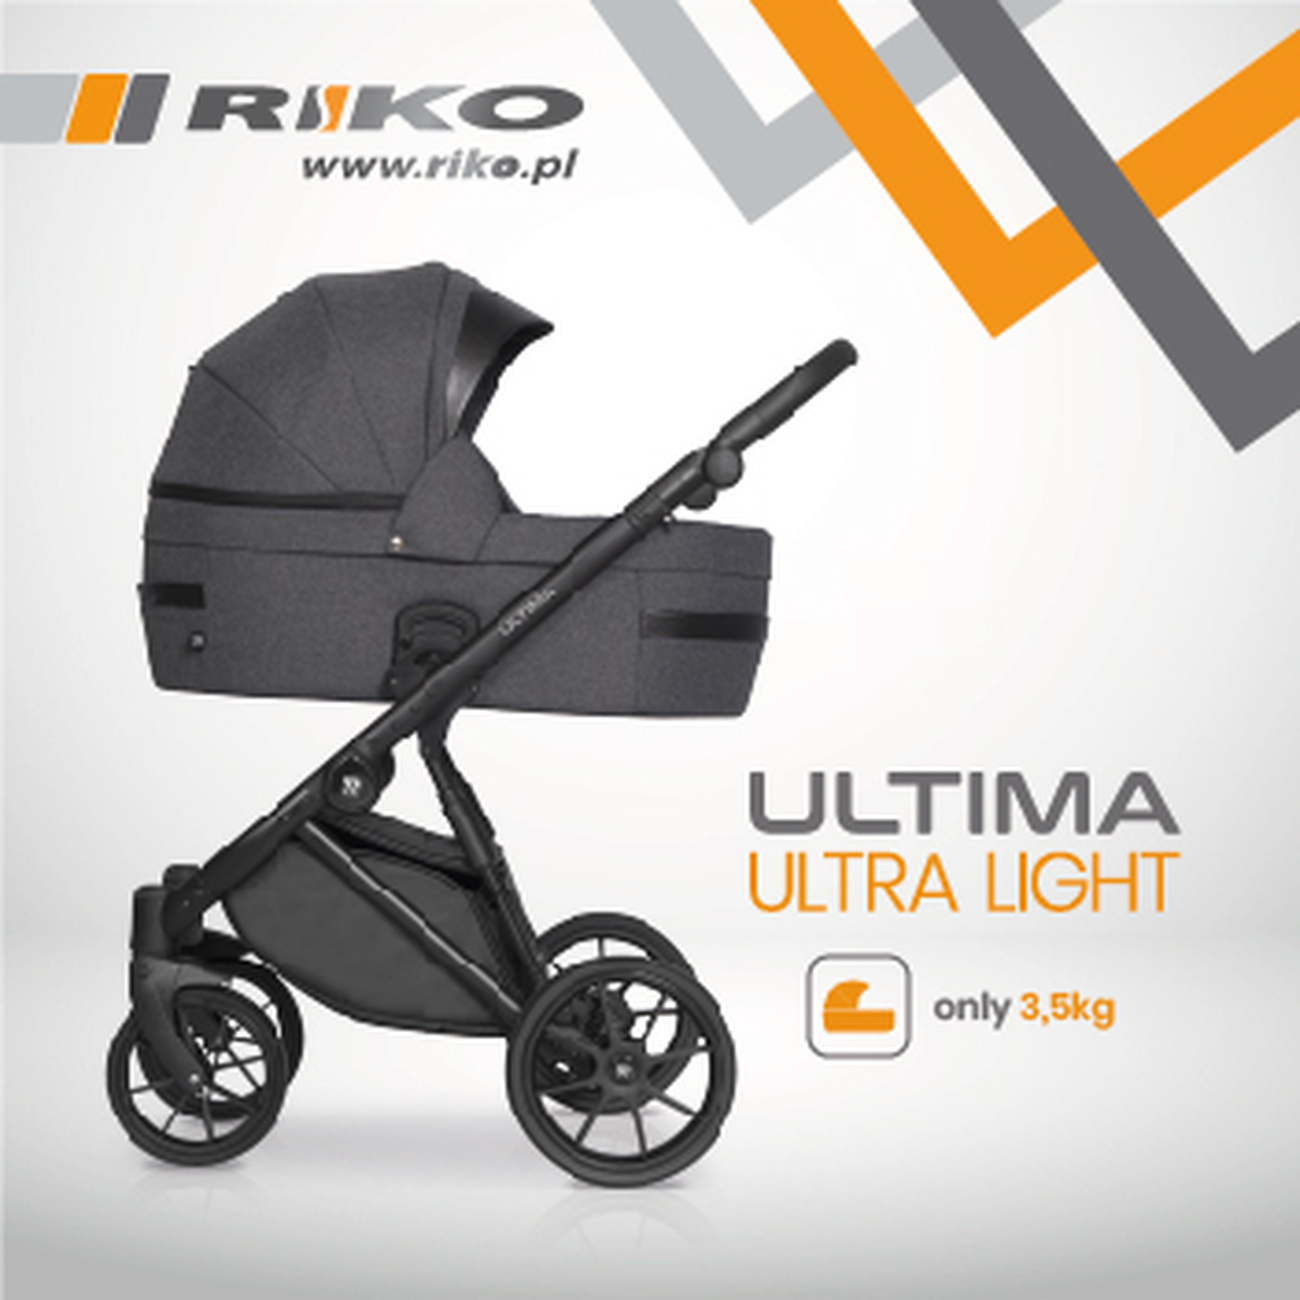 Riko Ultima Ultra Light